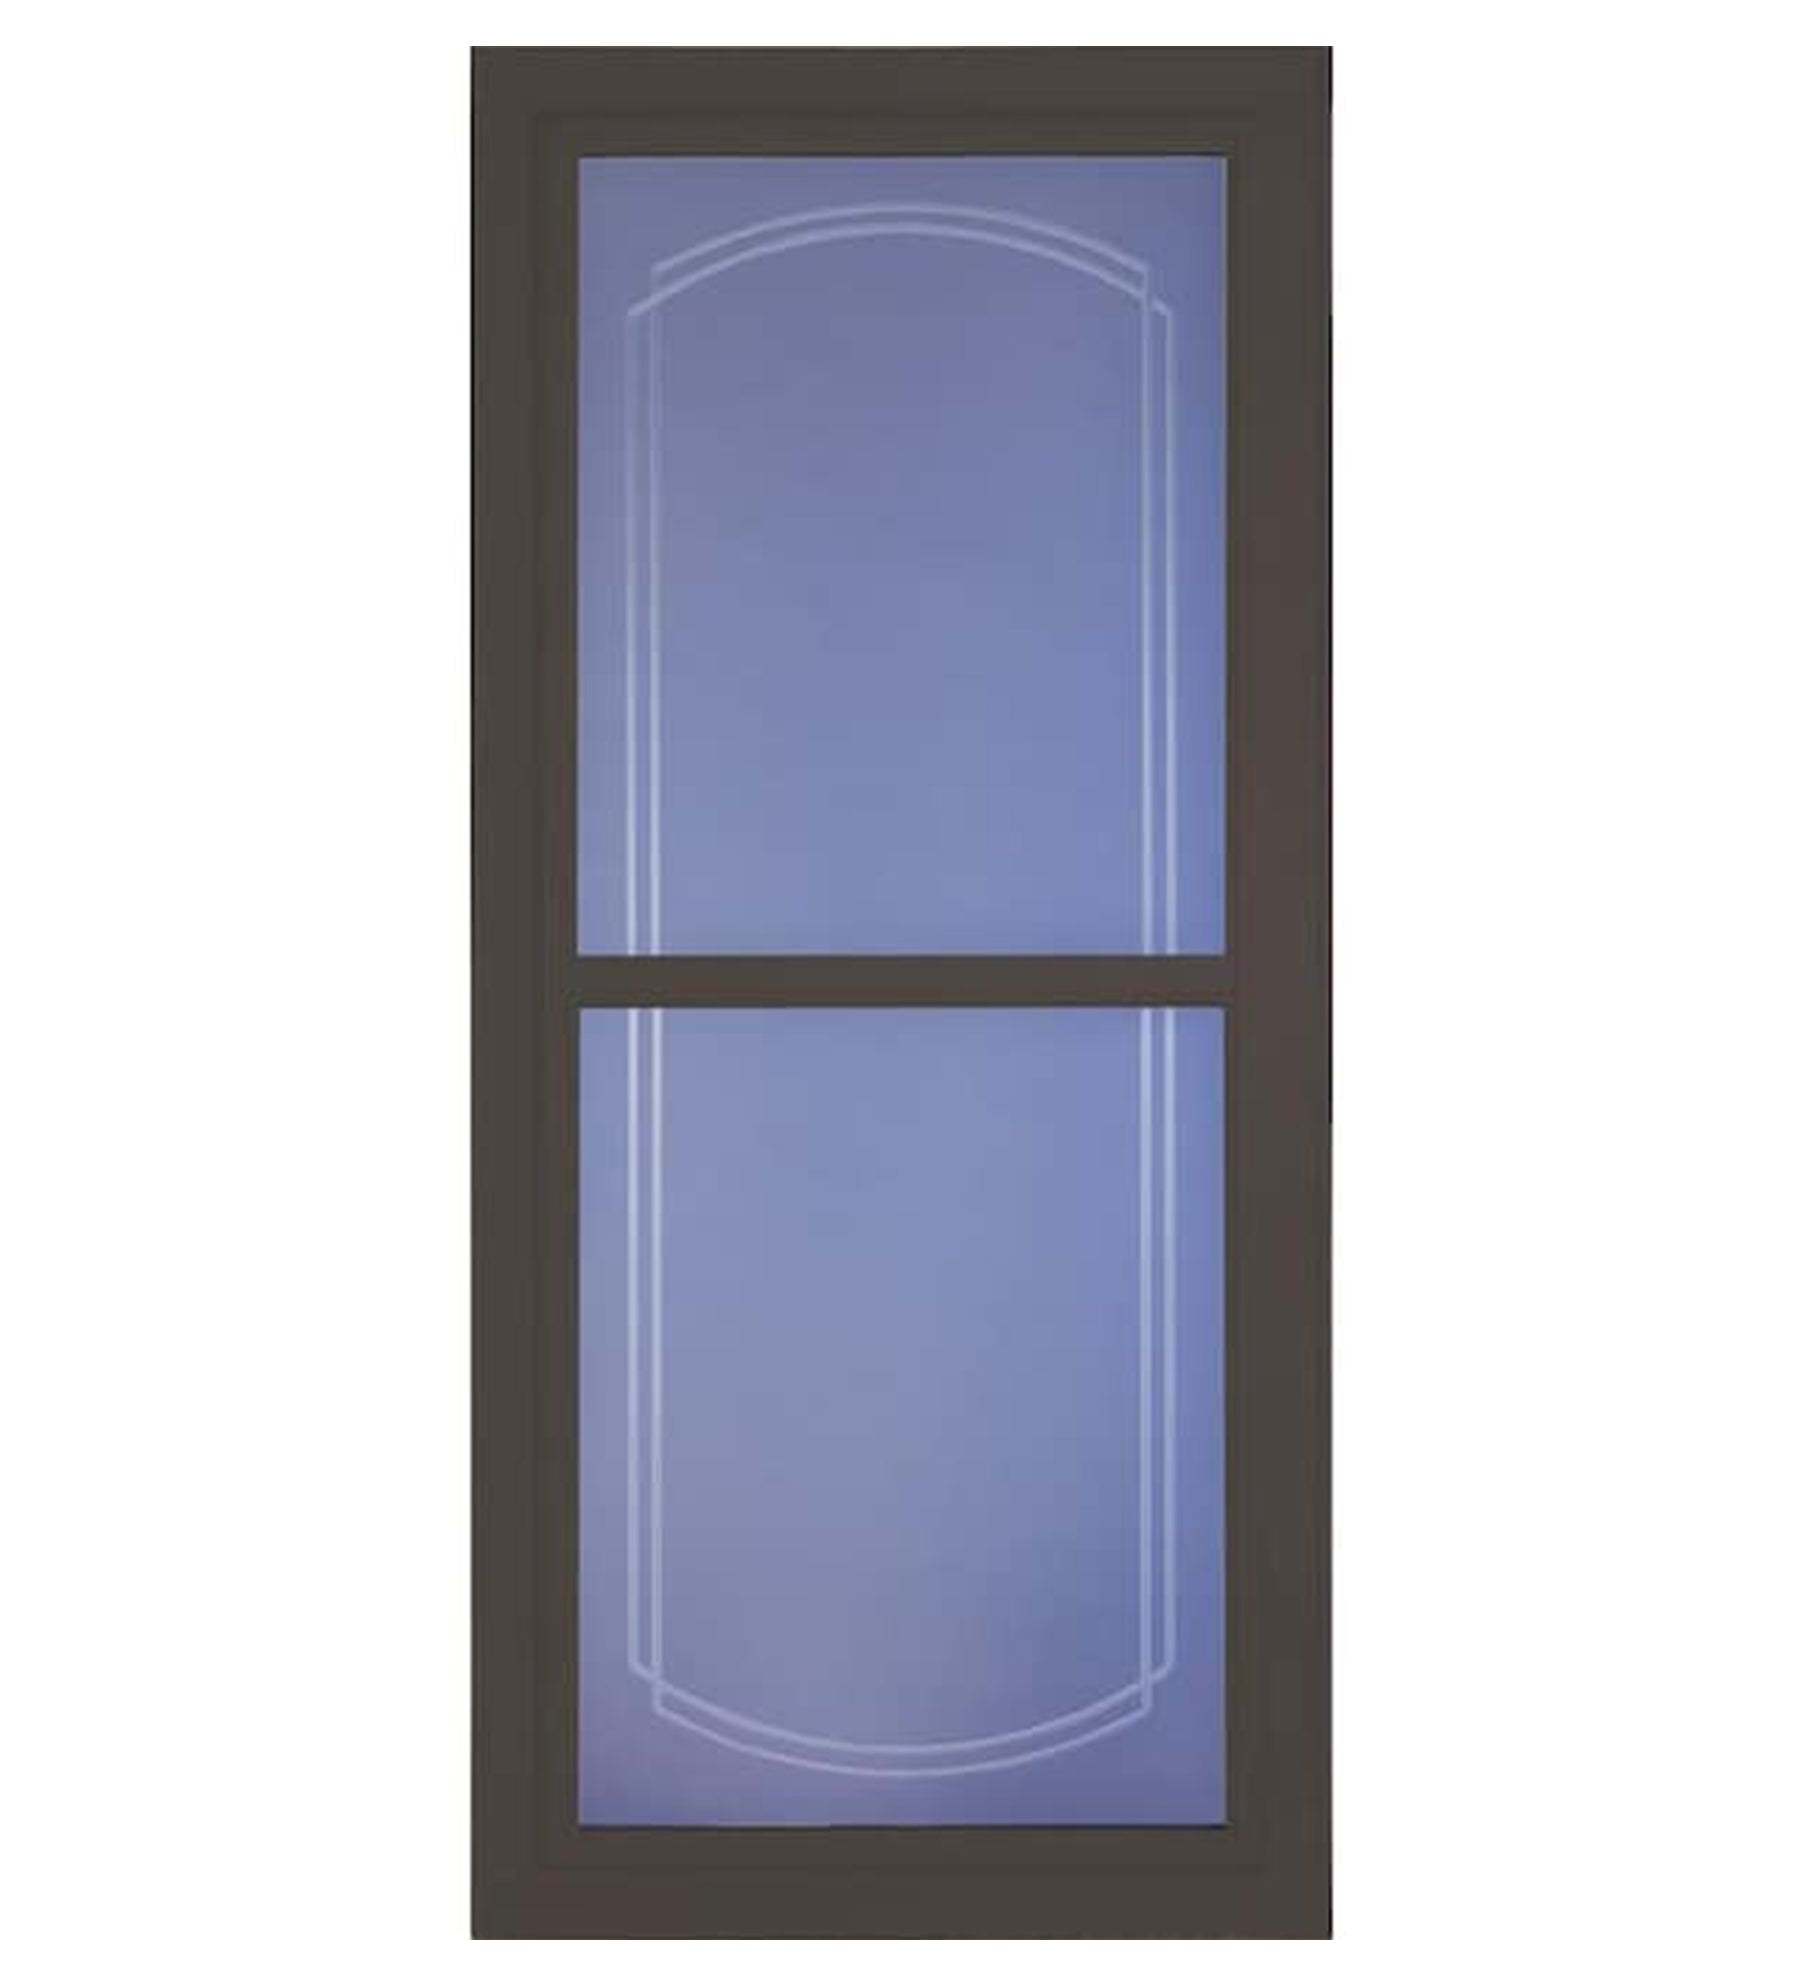 INSTALLED Larson Easy Vent Glass Design Double Bevel Full View Storm Door w/ Hardware         STARTING $769.99